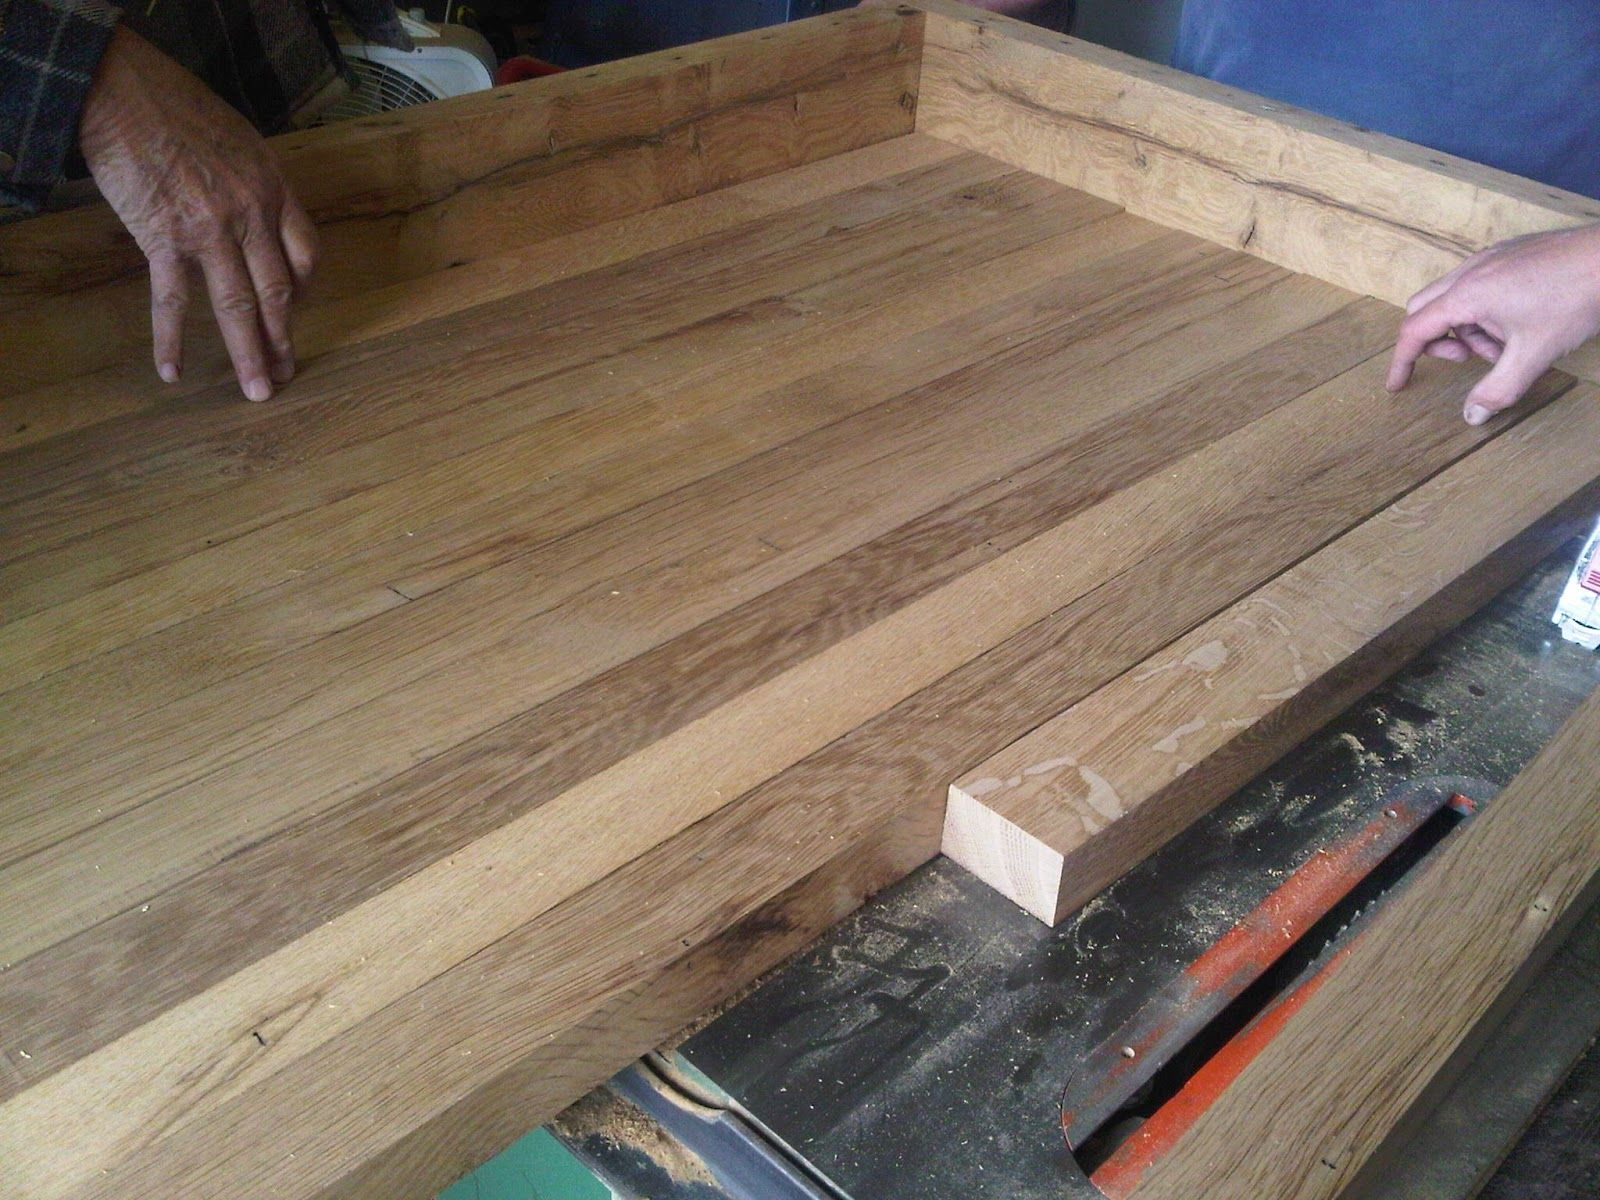 Best Wood For Butcher Block Counters: How To Make A Wood Countertop